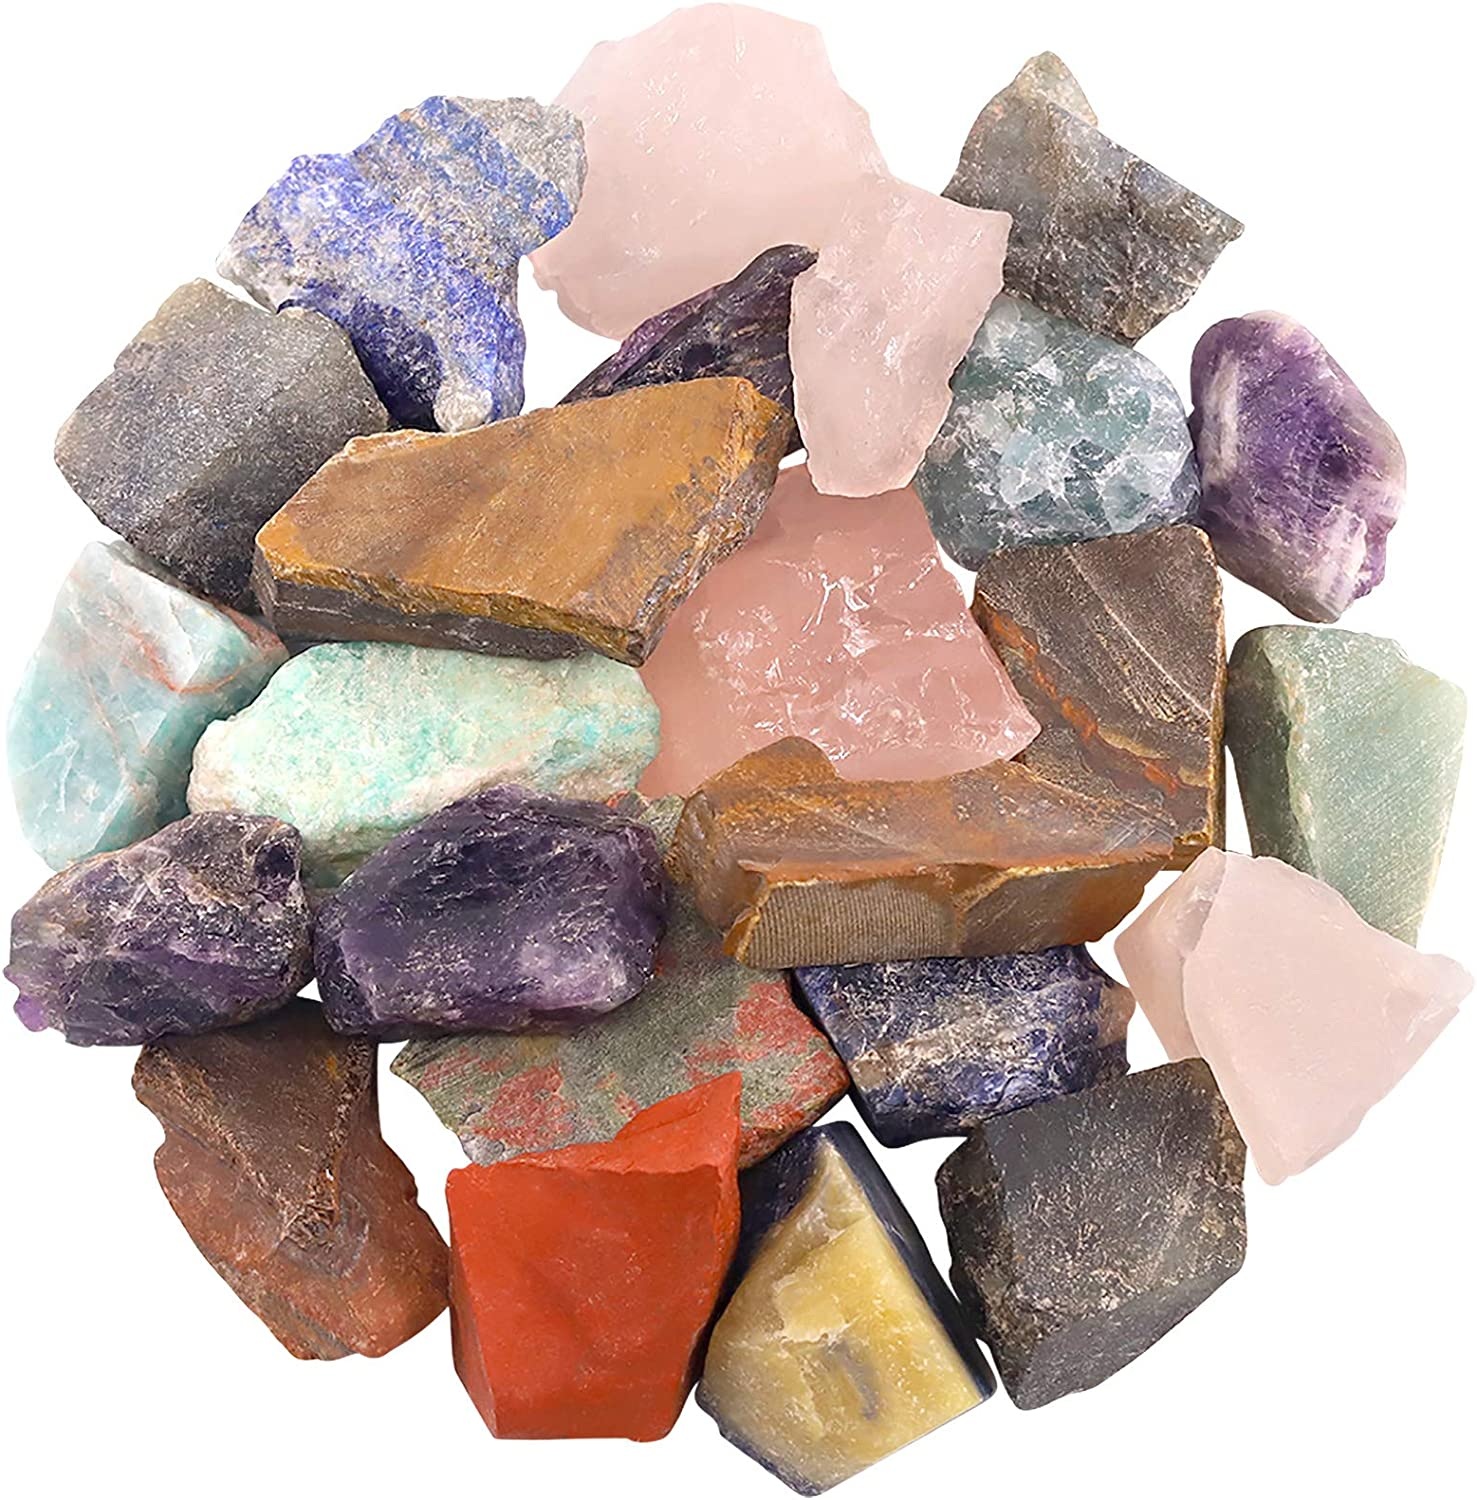 Hilitchi 1lb Bulk Raw Special sale item Assorted Cab for Crystal Rough Stone Max 53% OFF